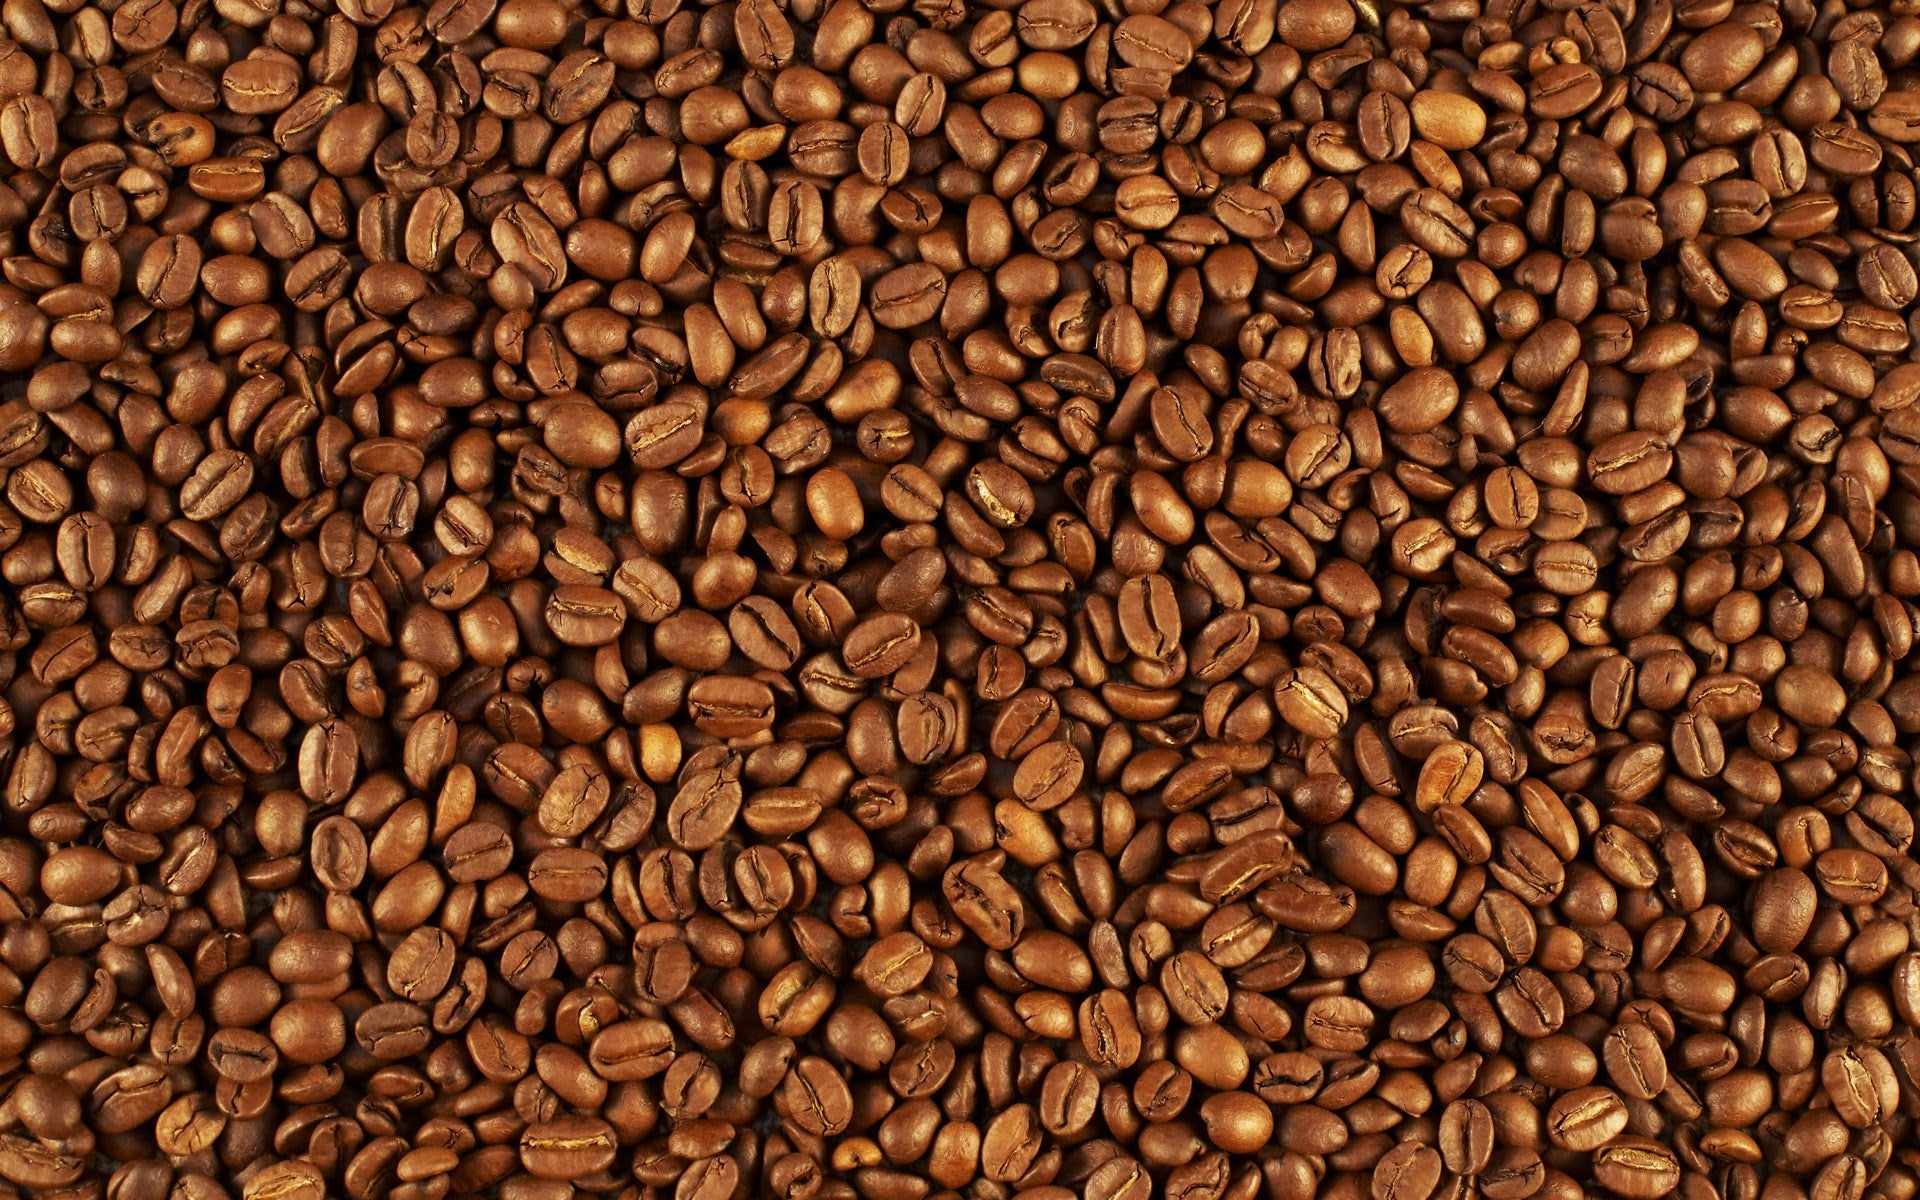 FRESHLY ROASTED COFFEE